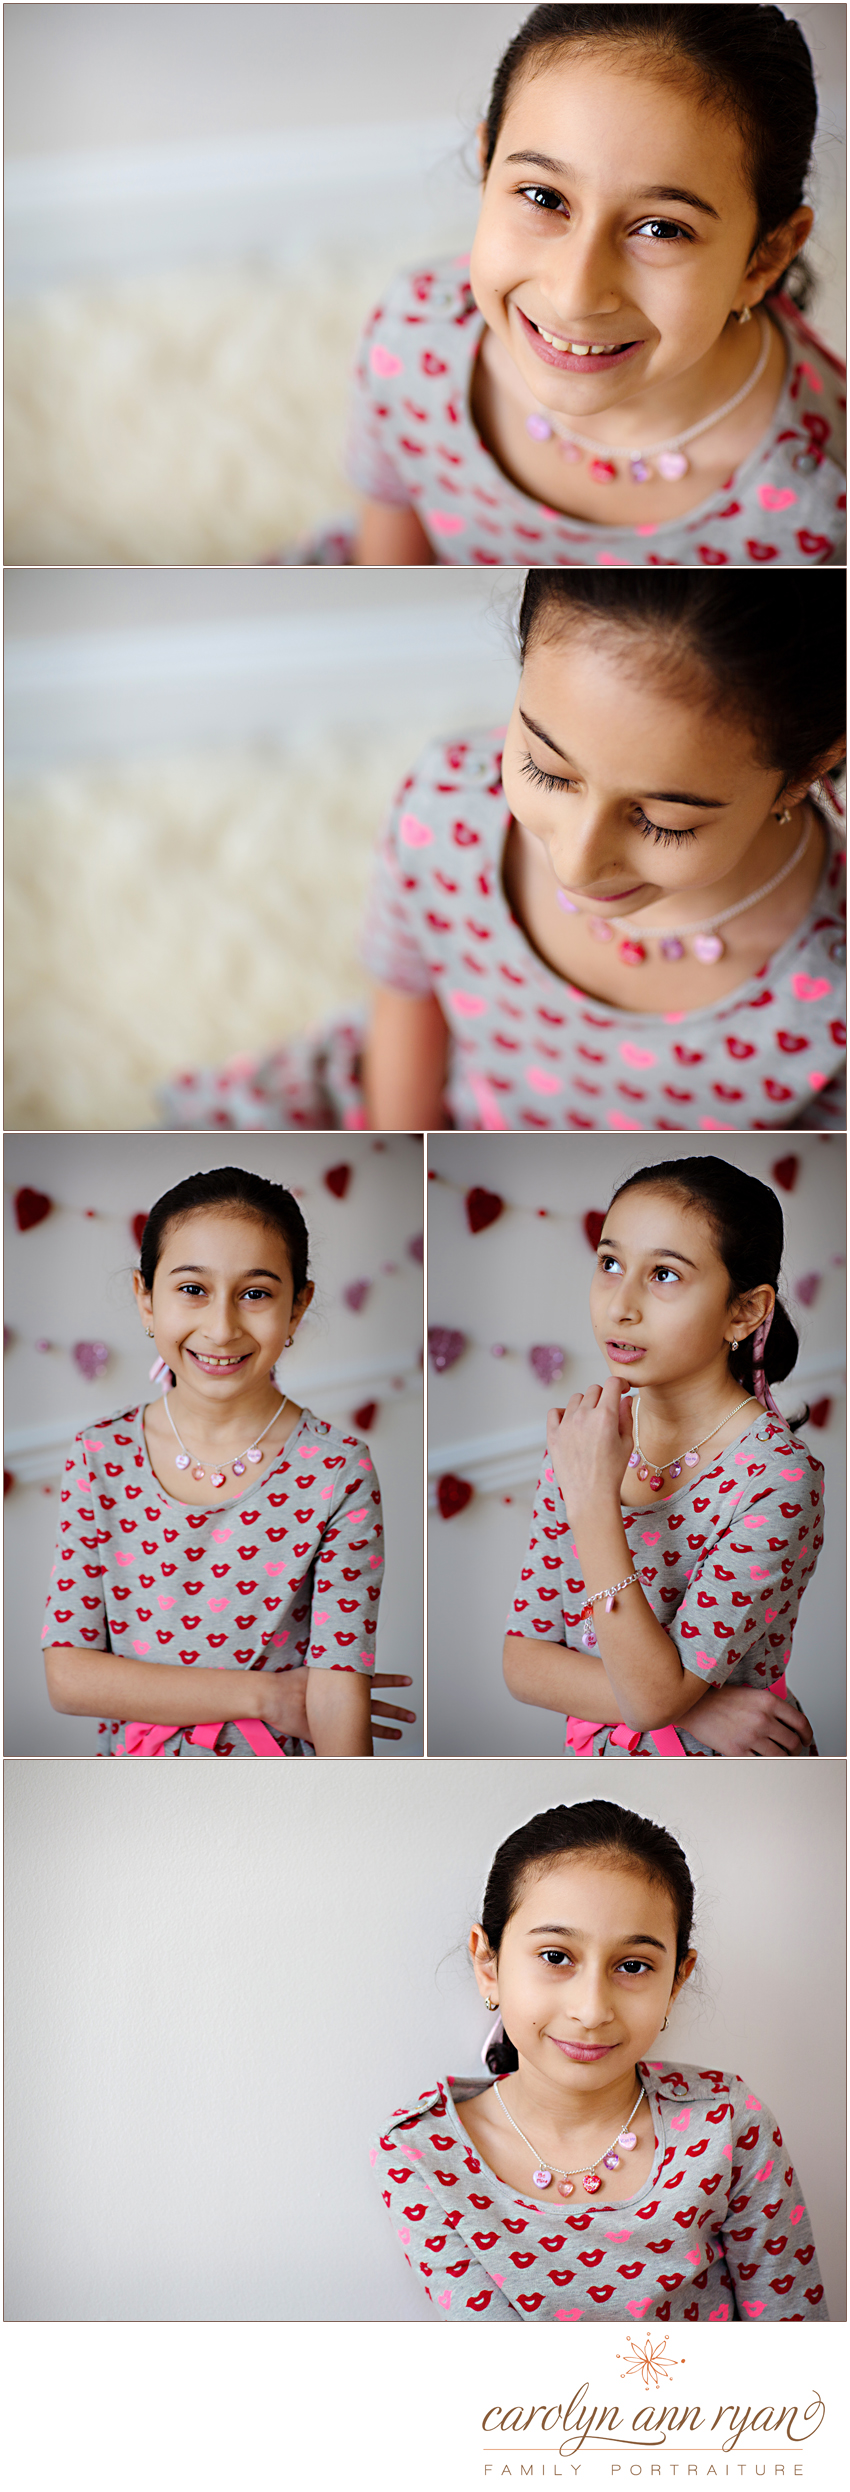 Westfield, NJ Family Photographer photographs young lady in portrait studio for valentines day